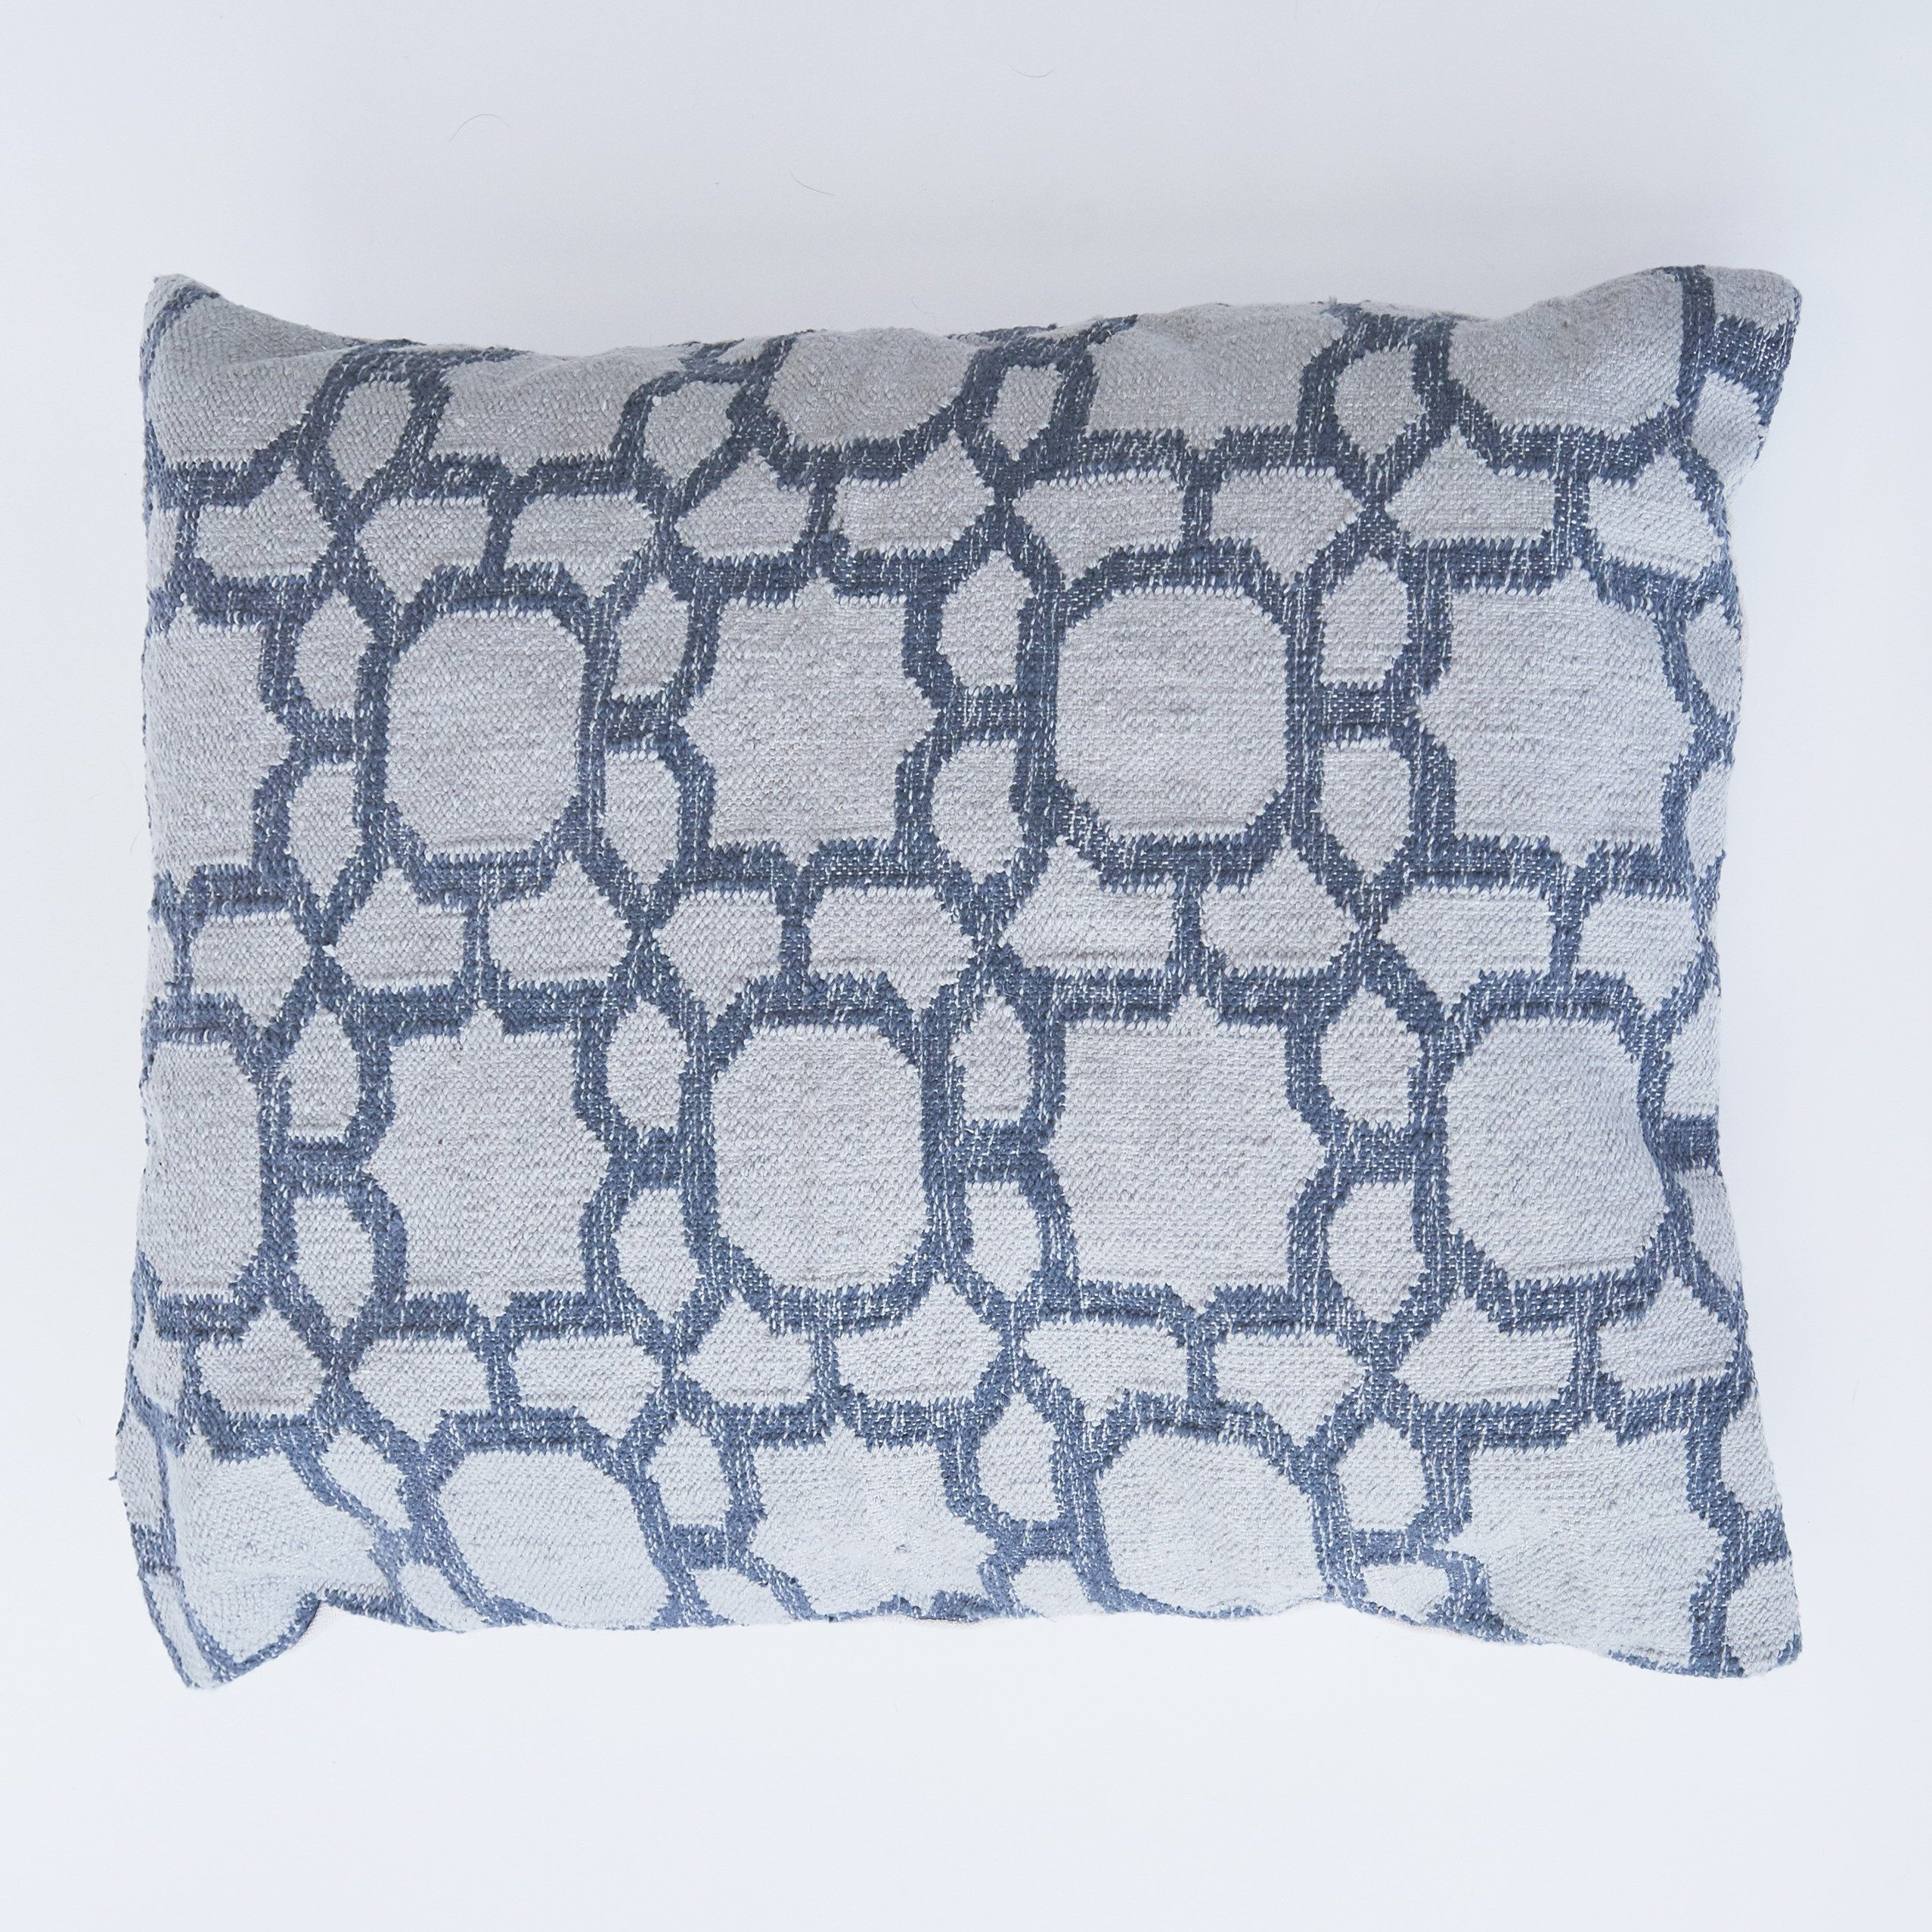 KASBAH | NIMBUS FLOOR CUSHION